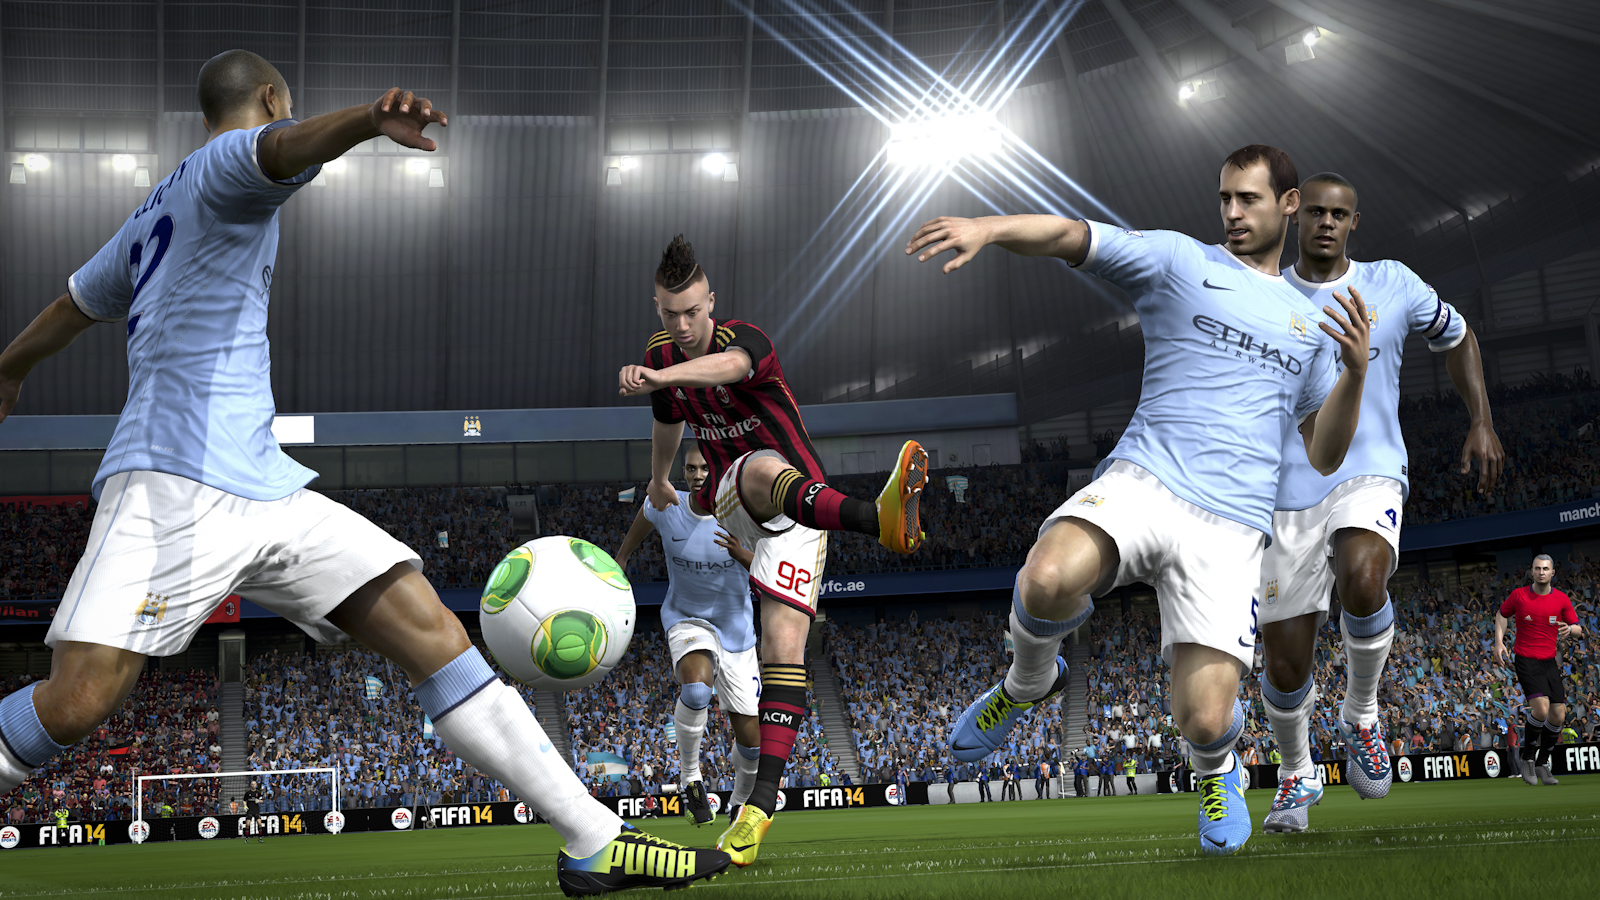 FIFA 14 (PS4) - think of it as FIFA 14.5